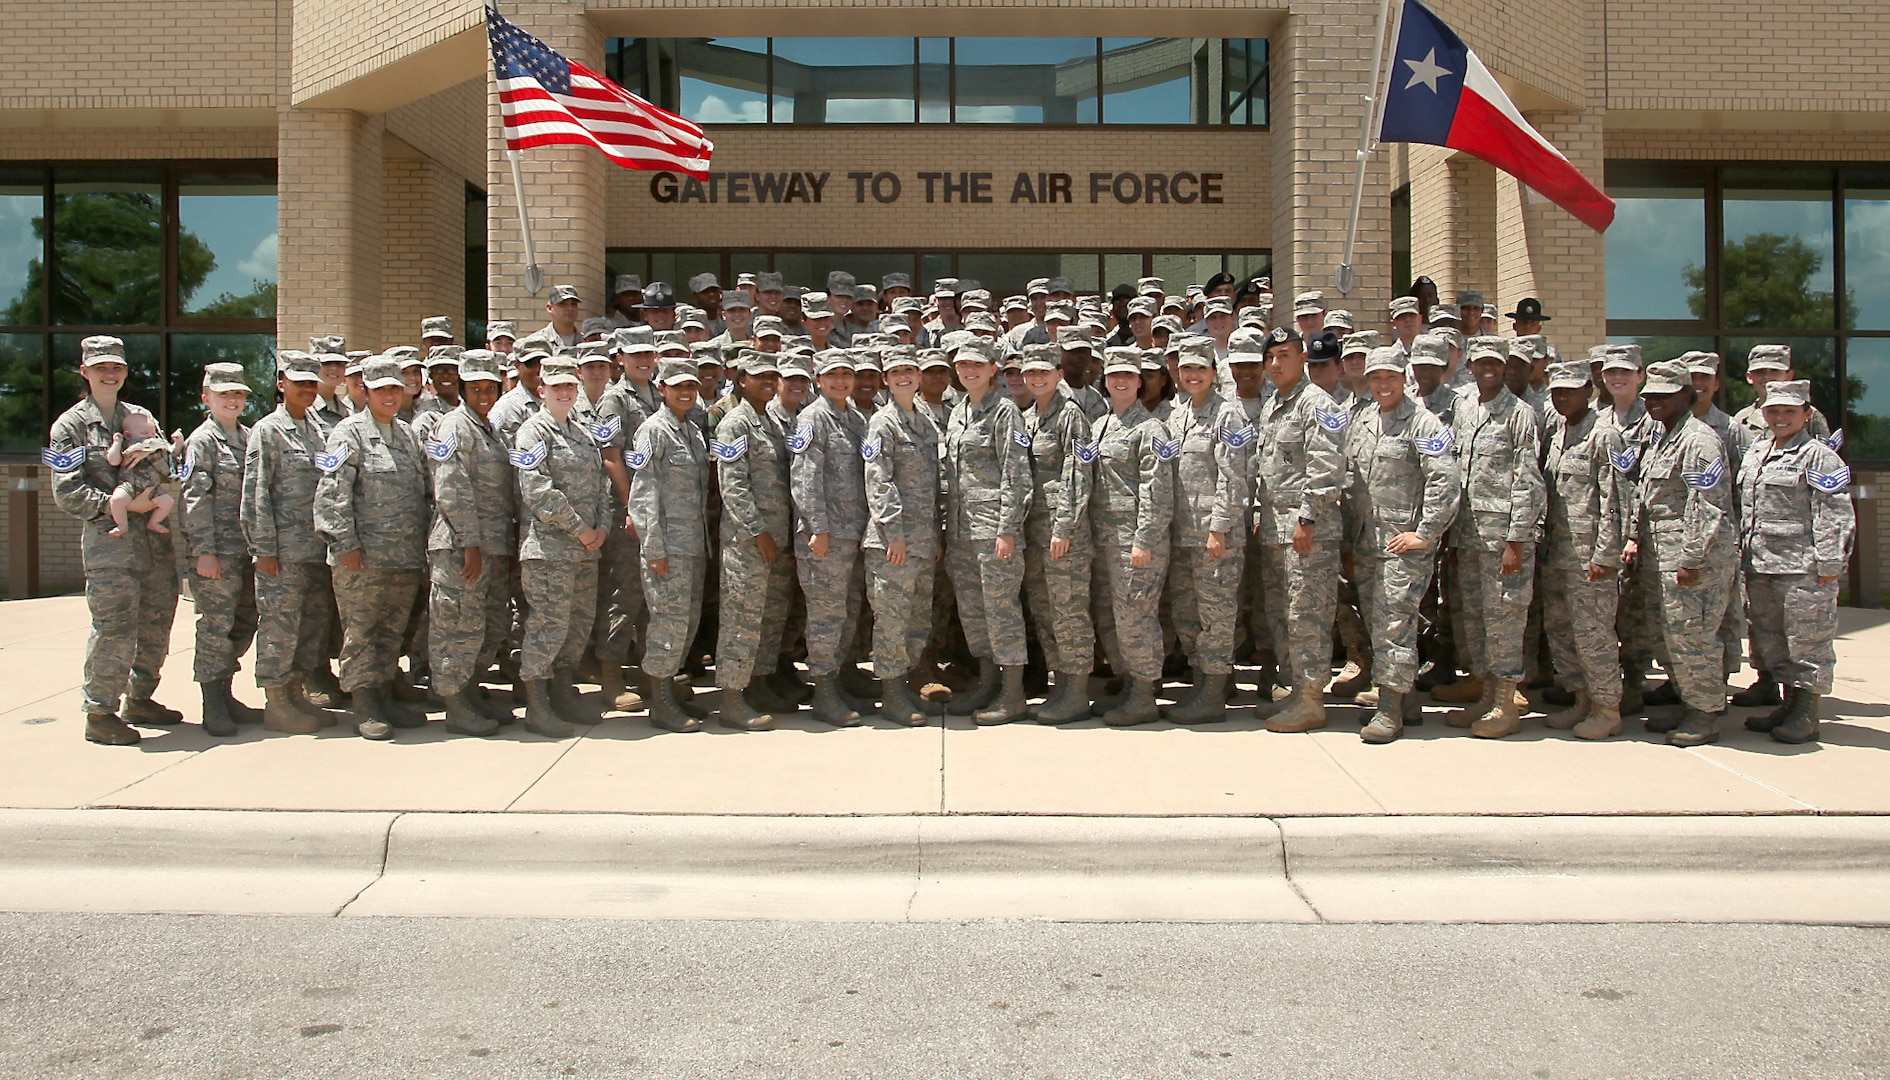 Lackland Airmen selected for promotion to staff sergeant gather for a group photo Aug. 19. (U.S. Air Force photo/Robbin Cresswell)